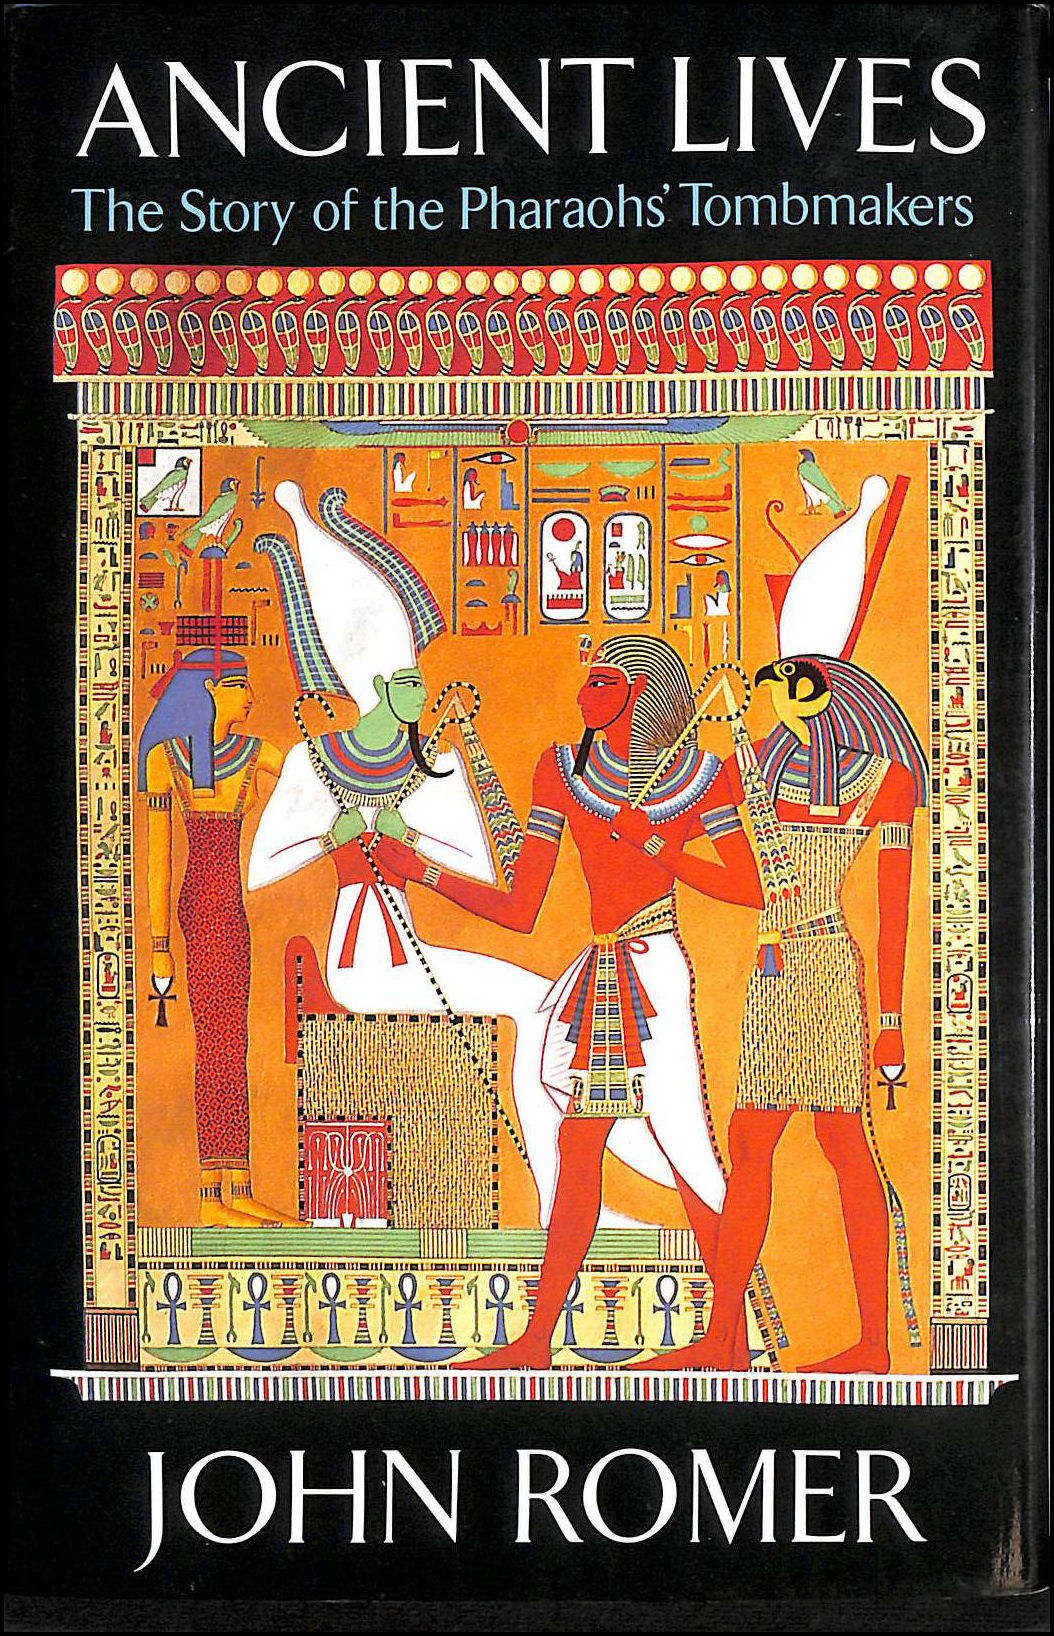 Ancient Lives - The Story Of The Pharohs' Tombstones, Romer, John